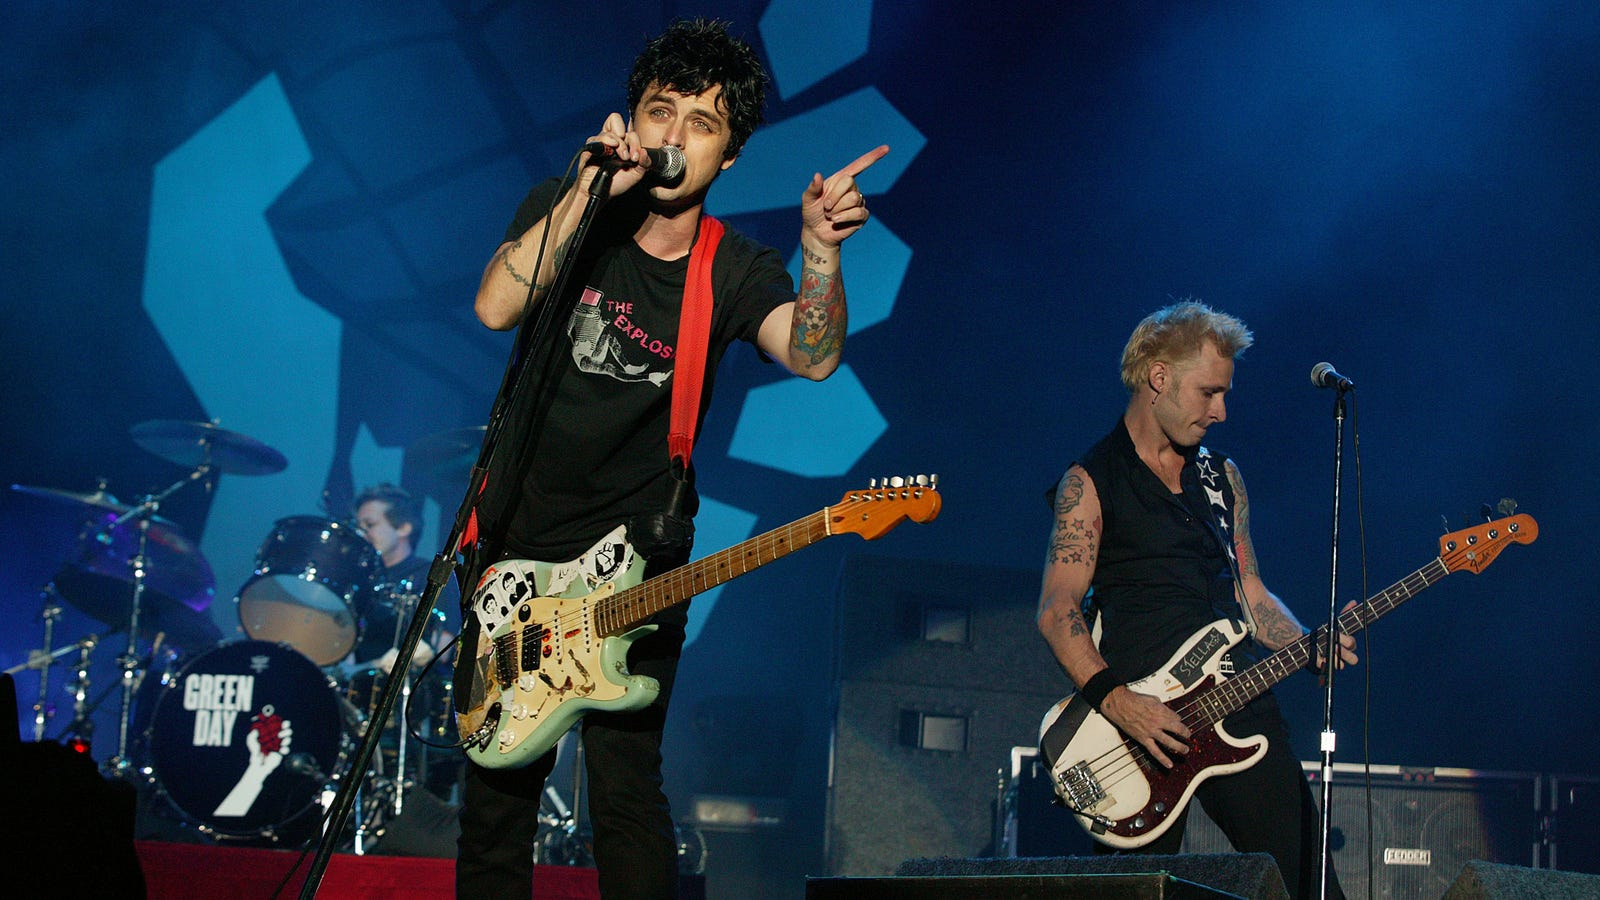 God bless The Washington Post, which cited Clickhole in a story about Green Day